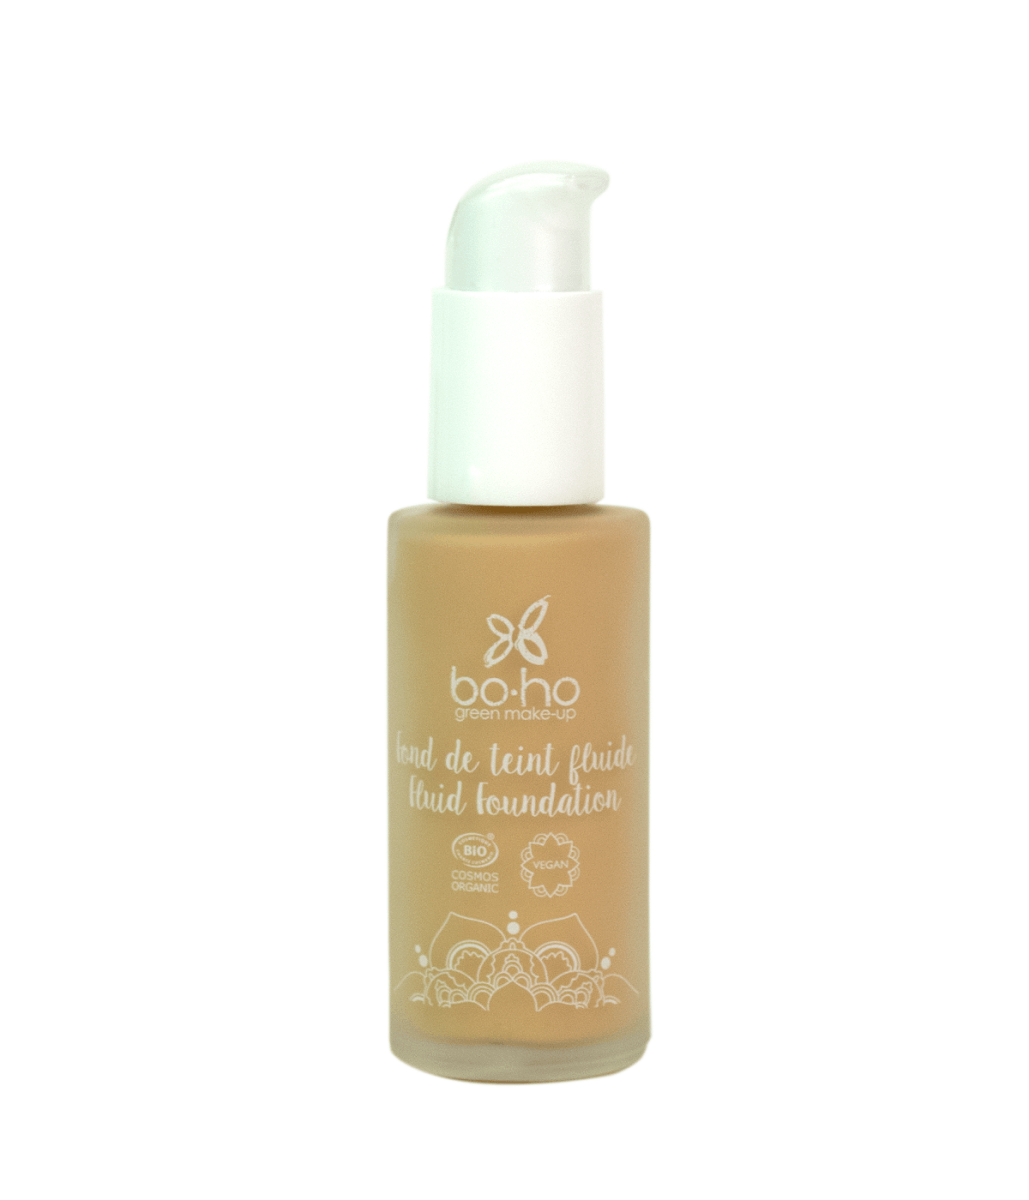 BOHO Organic Fluid Foundation 有機高效遮瑕柔滑粉底液 [30ml] - MINT Organics